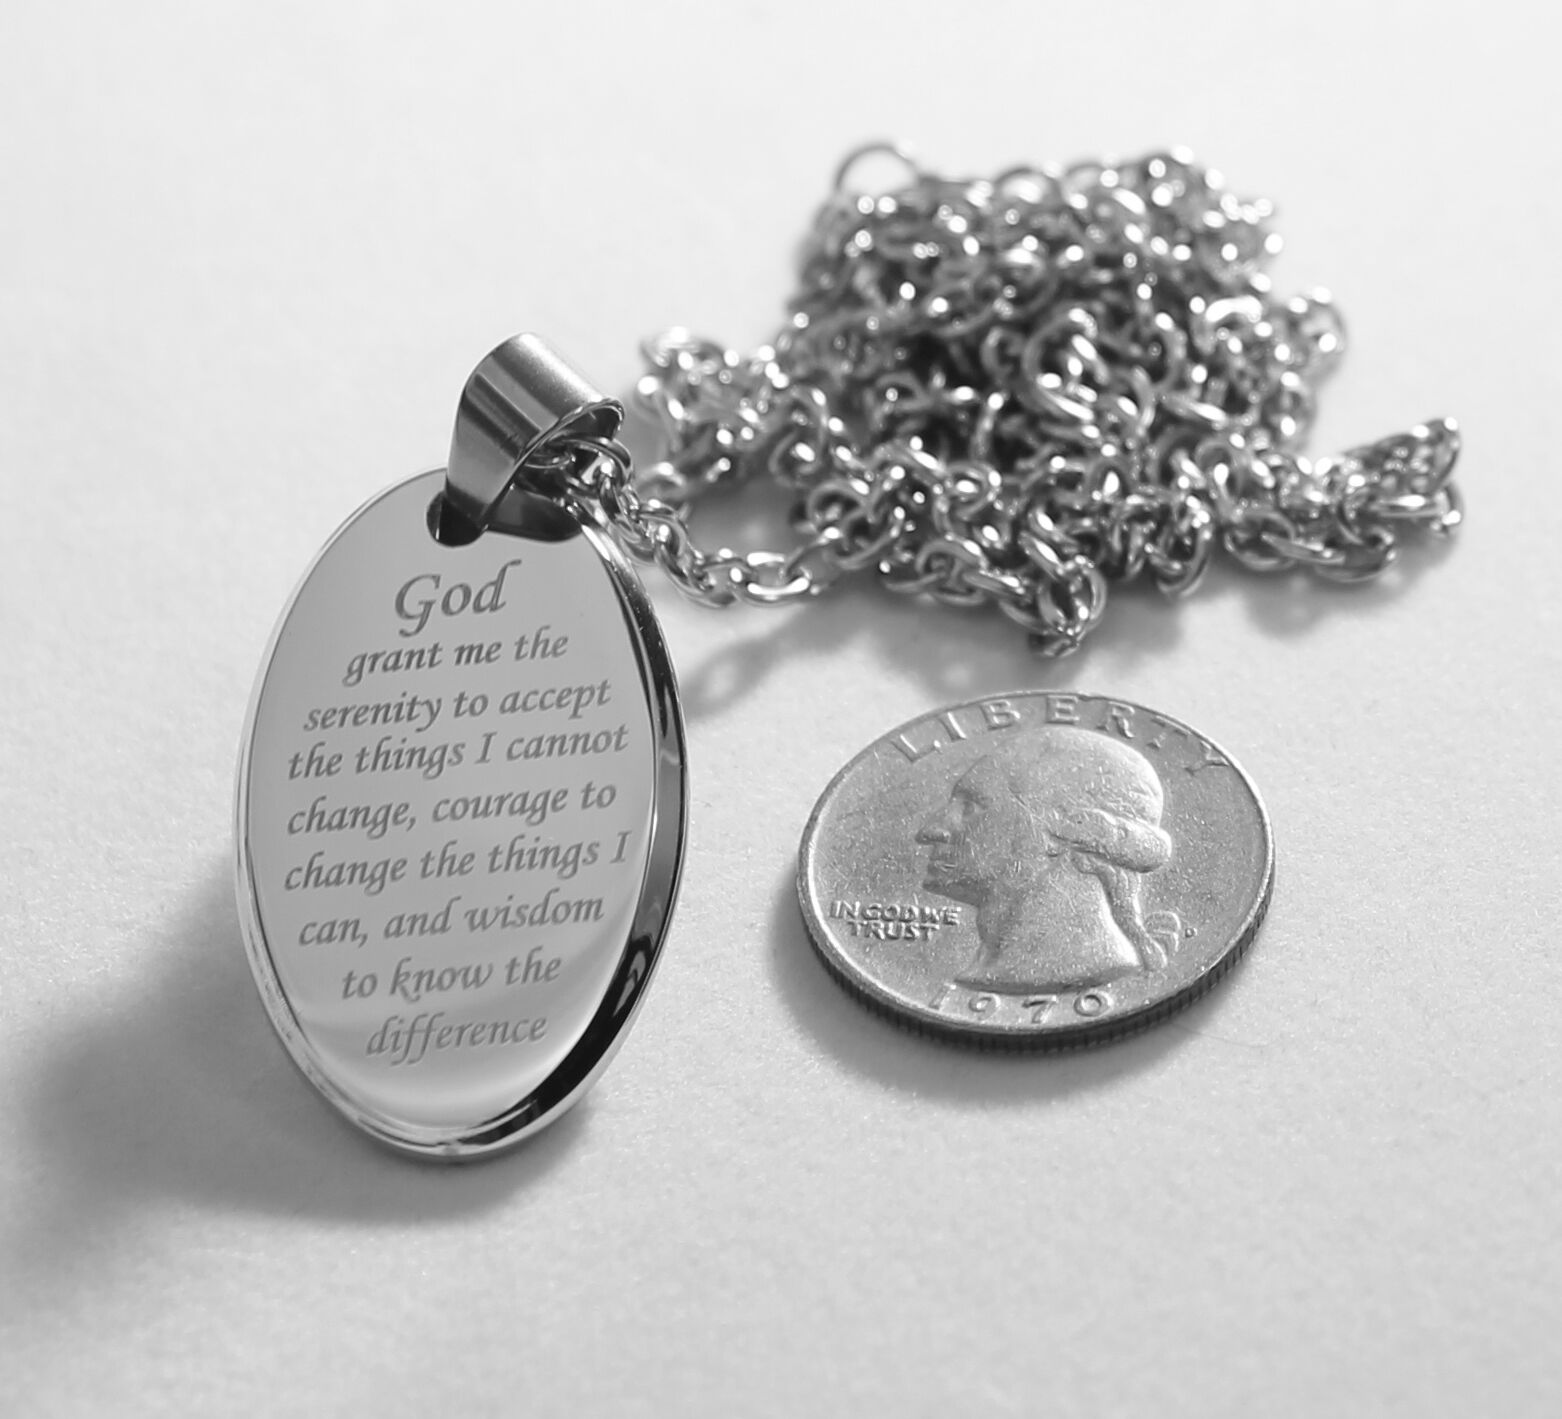 bible verse christian chain pendant com steel dp free amazon serenity coin with necklace prayer jewelry praying hands medal stainless